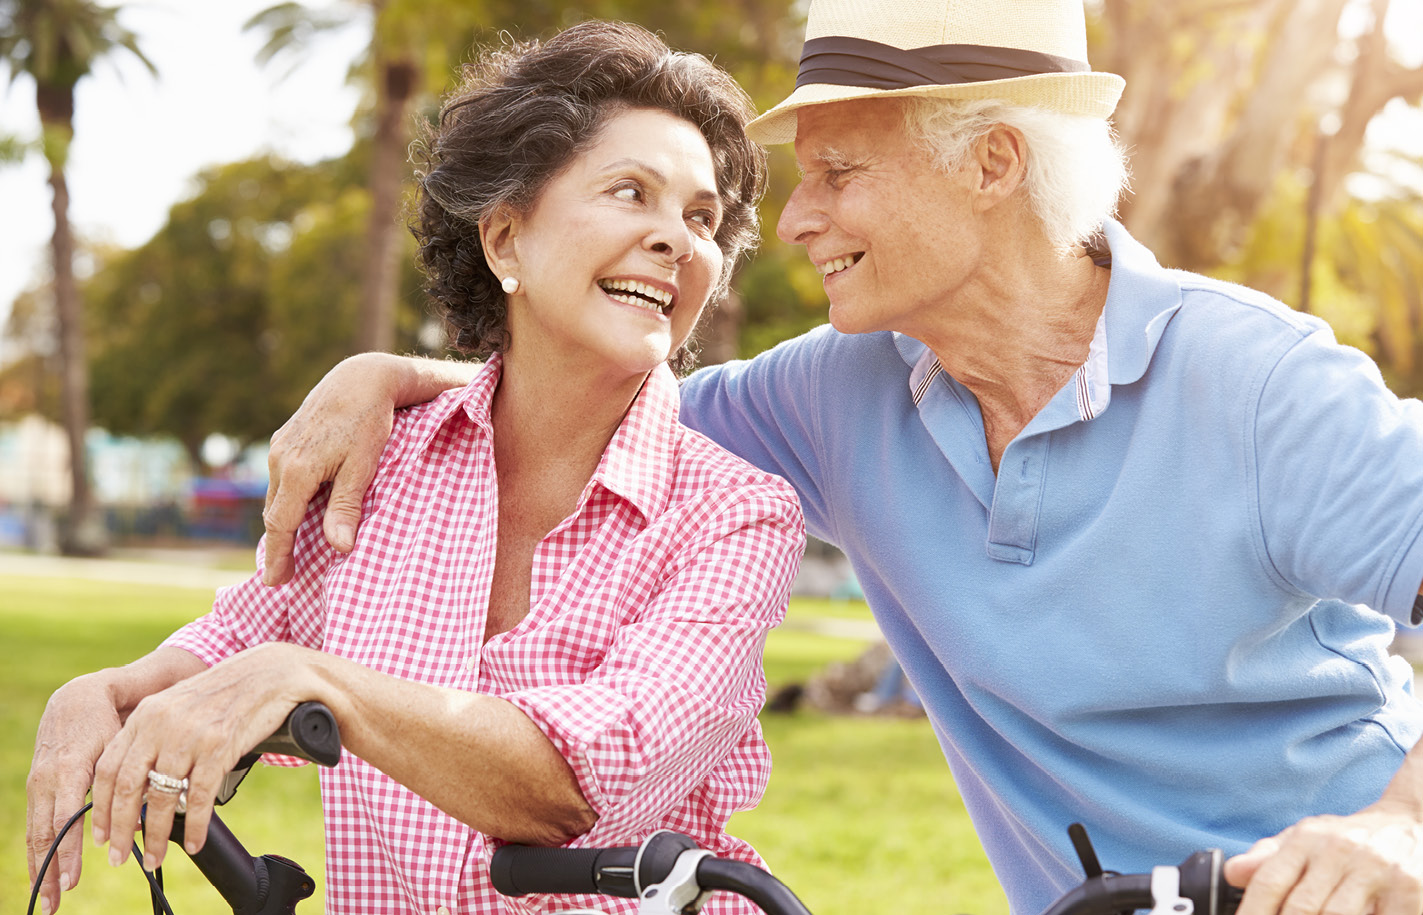 A senior man and woman riding bikes together outdoors